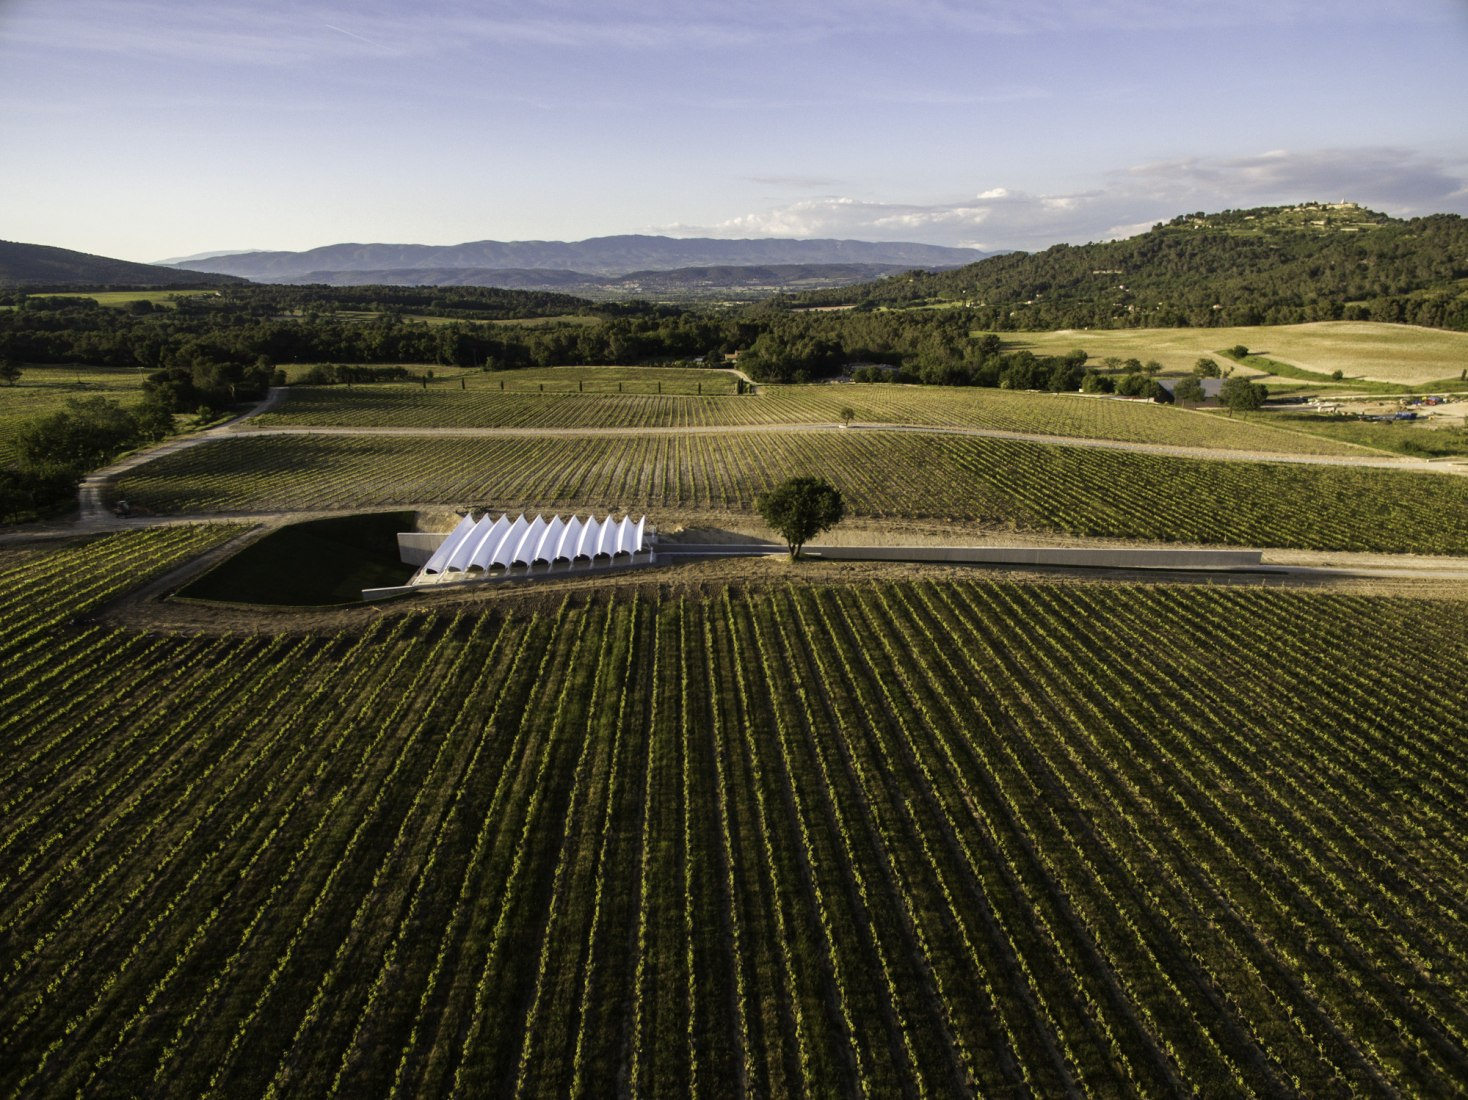 New Renzo Piano Photography Pavilion at Château La Coste. Photograph © Stéphane Aboudaram / WE ARE CONTENT(S).